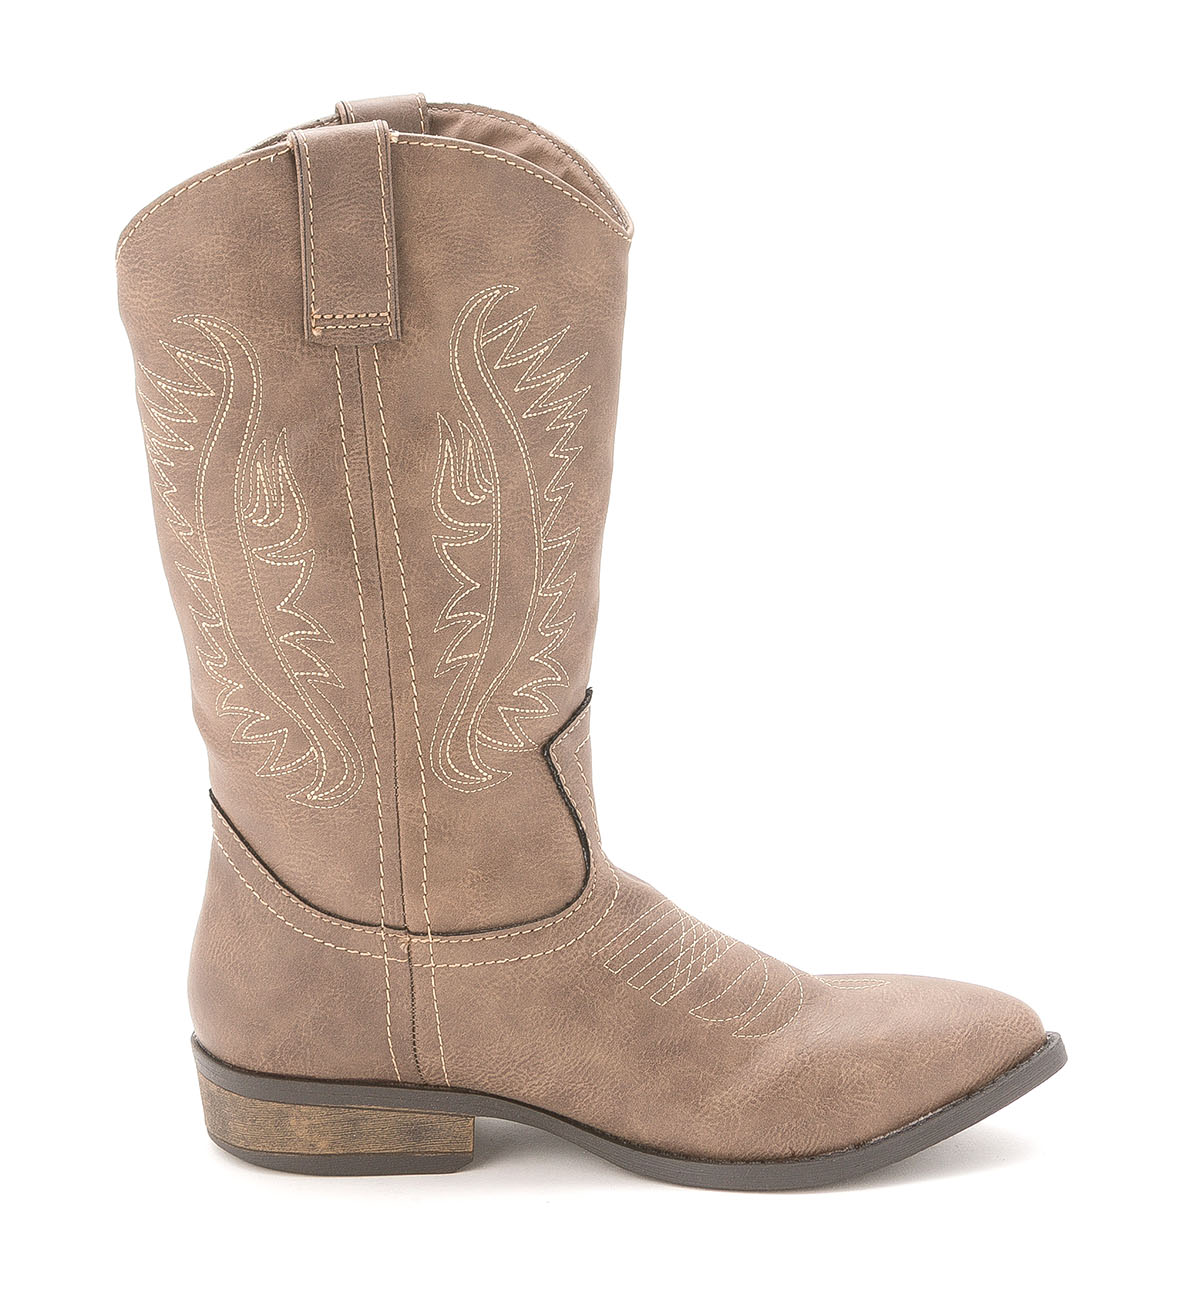 Popular Justin Boots - Justin Cowboy / Western Boots For Women | Handbags Shoes Accessories Reviews 2015